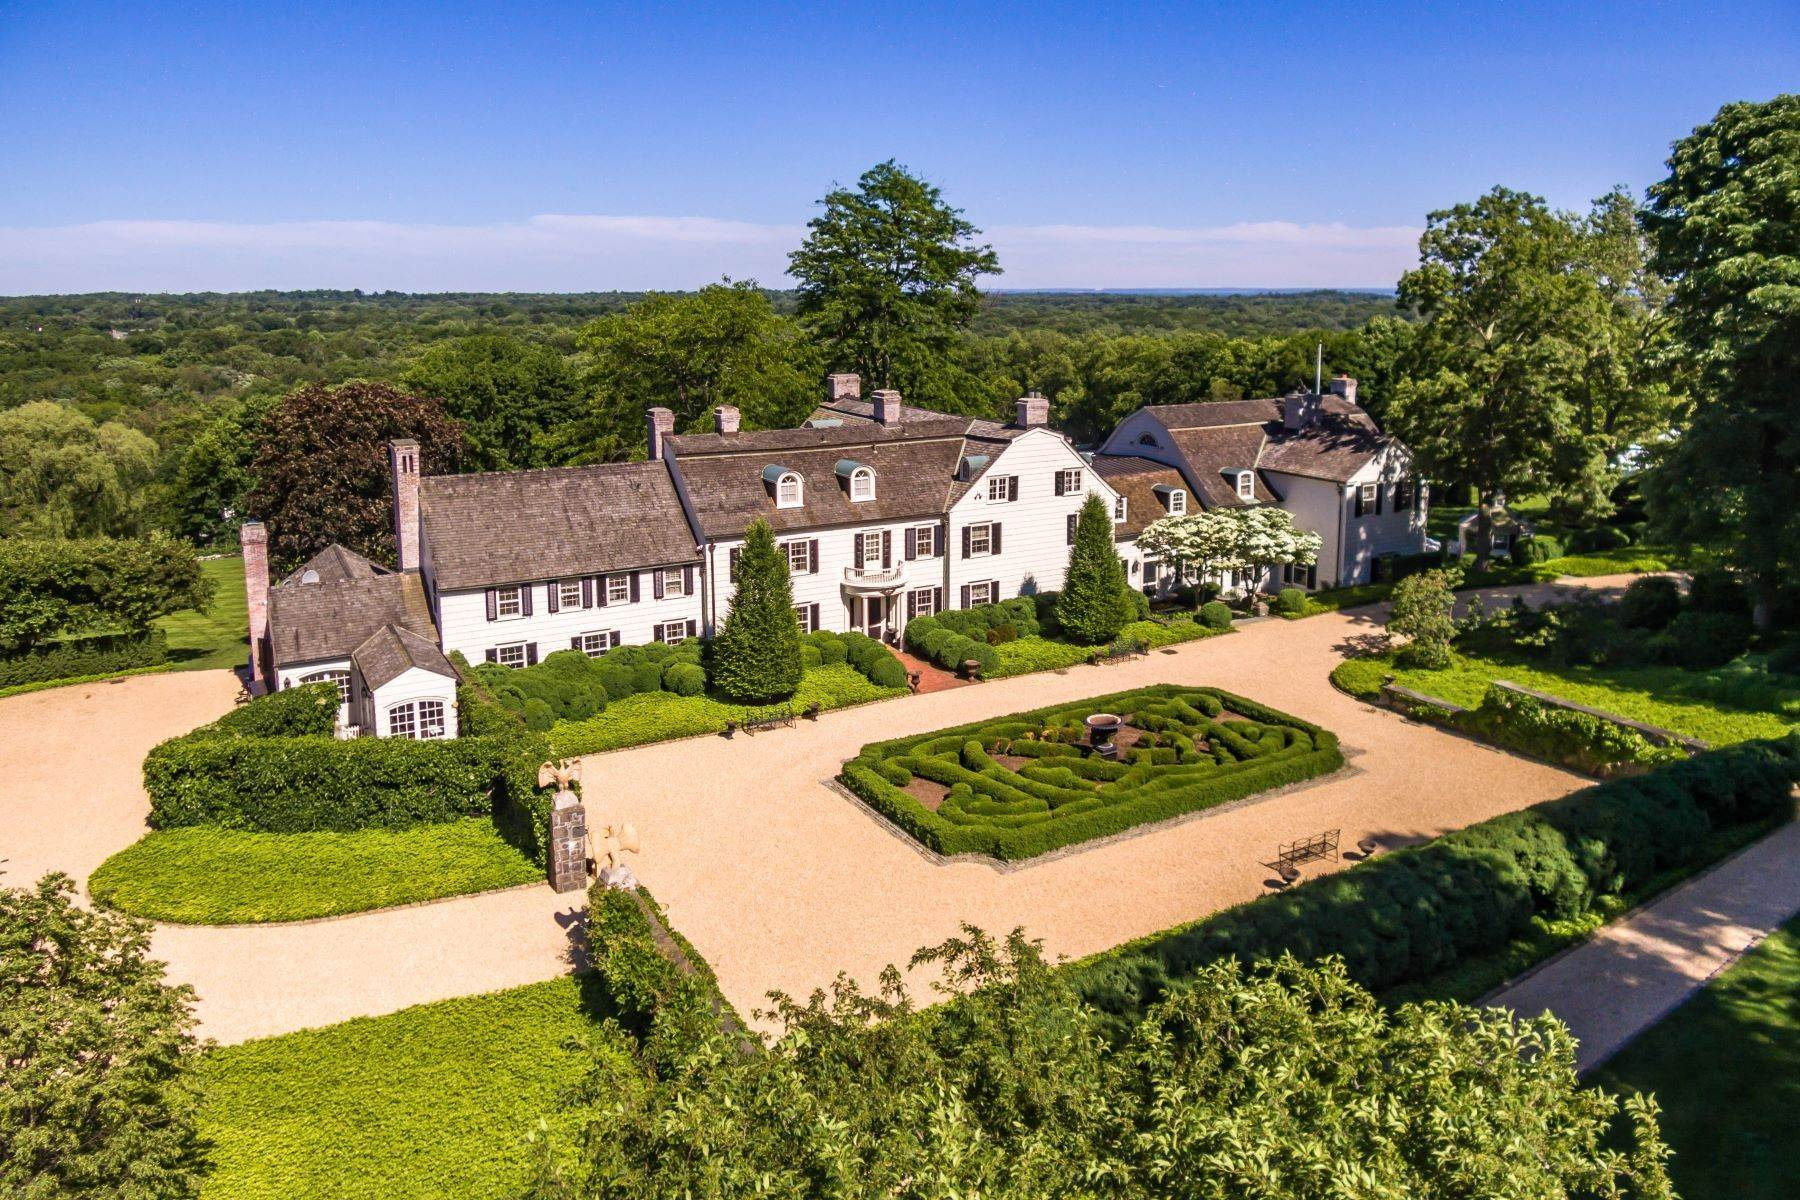 Single Family Homes for Sale at DENBIGH FARM- Magnificent Manor Home 591 Riversville Road Greenwich, Connecticut 06831 United States